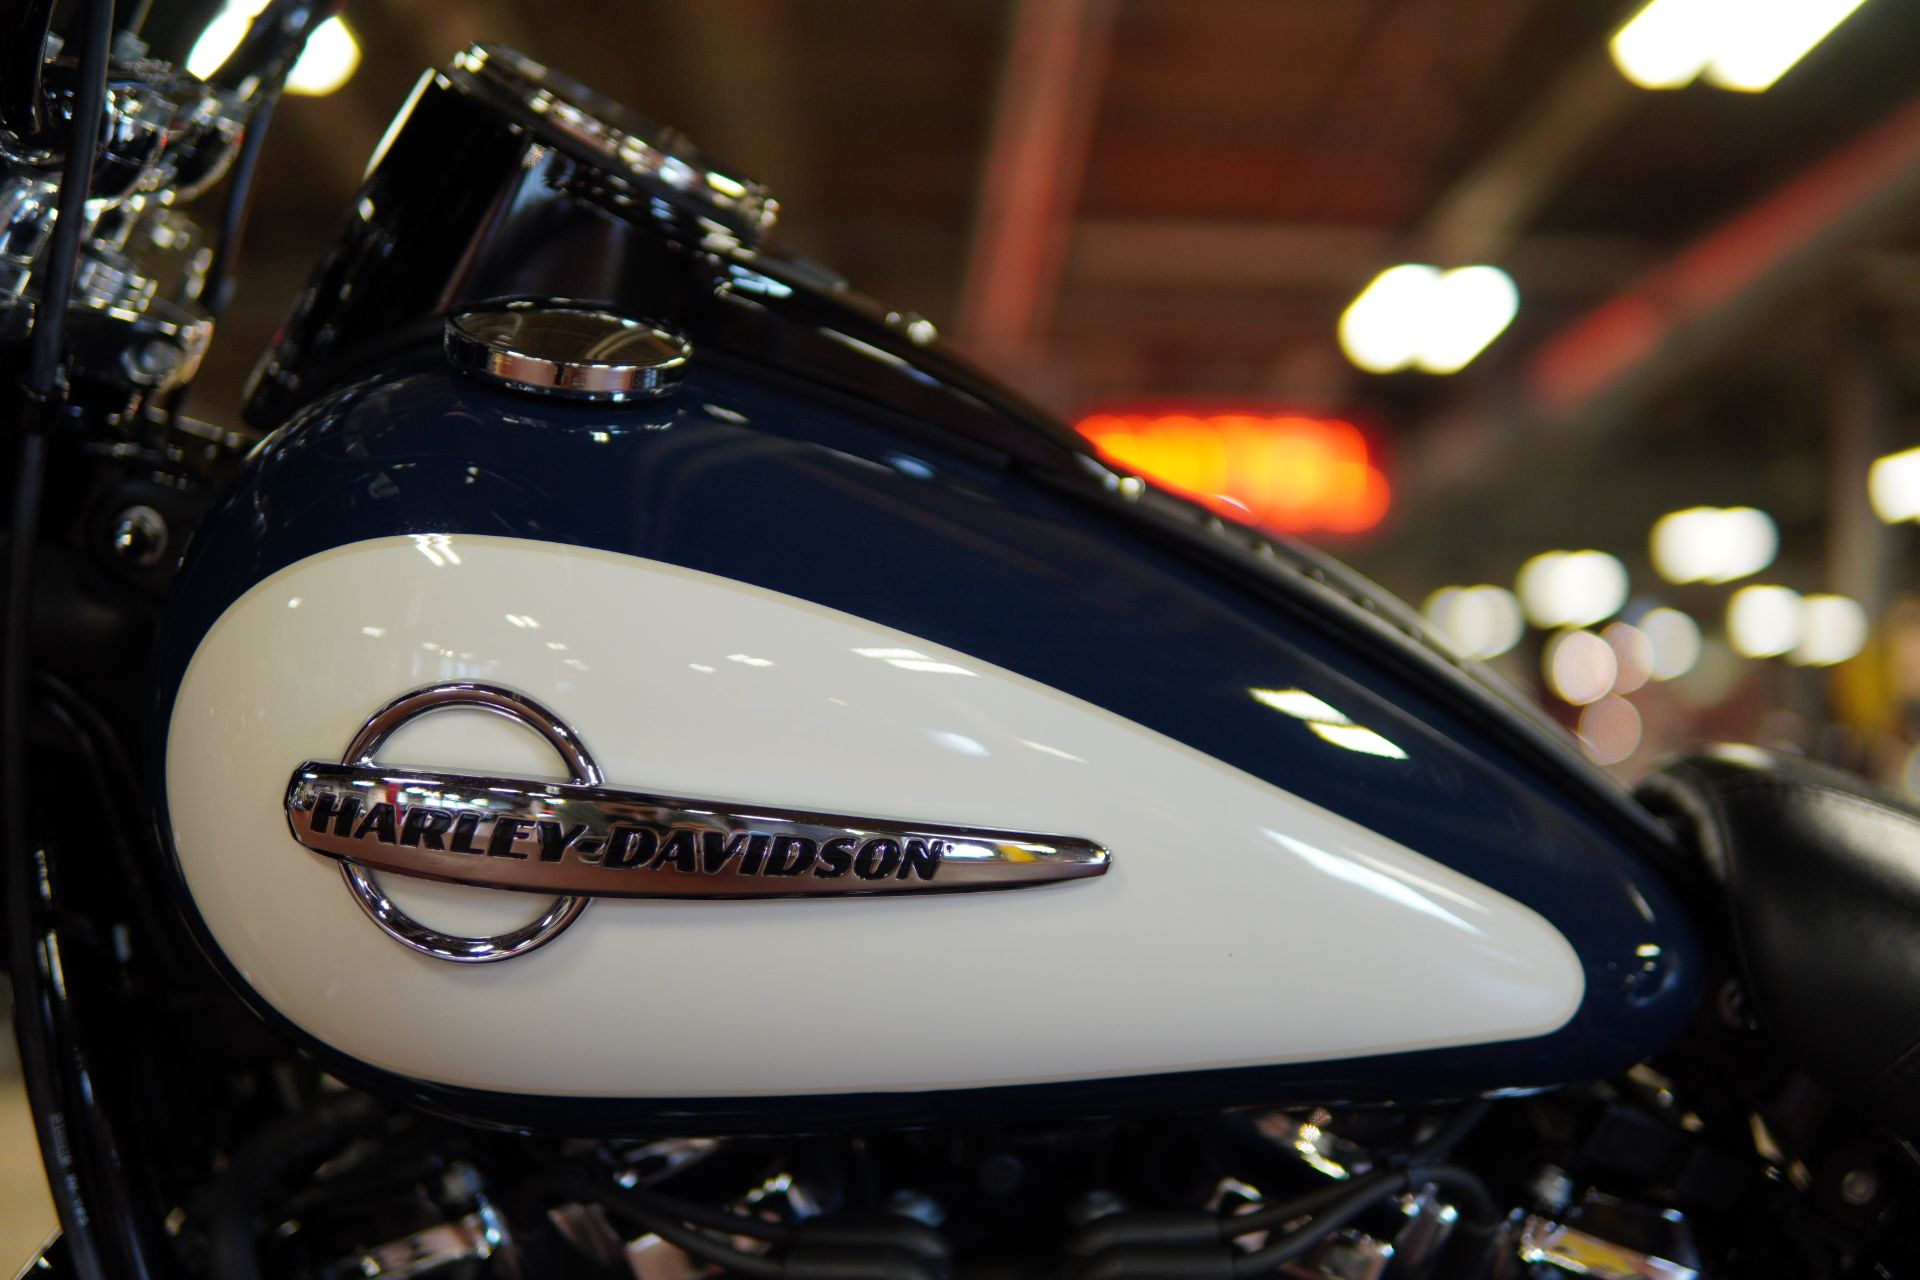 2019 Harley-Davidson Heritage Classic 114 in New London, Connecticut - Photo 11